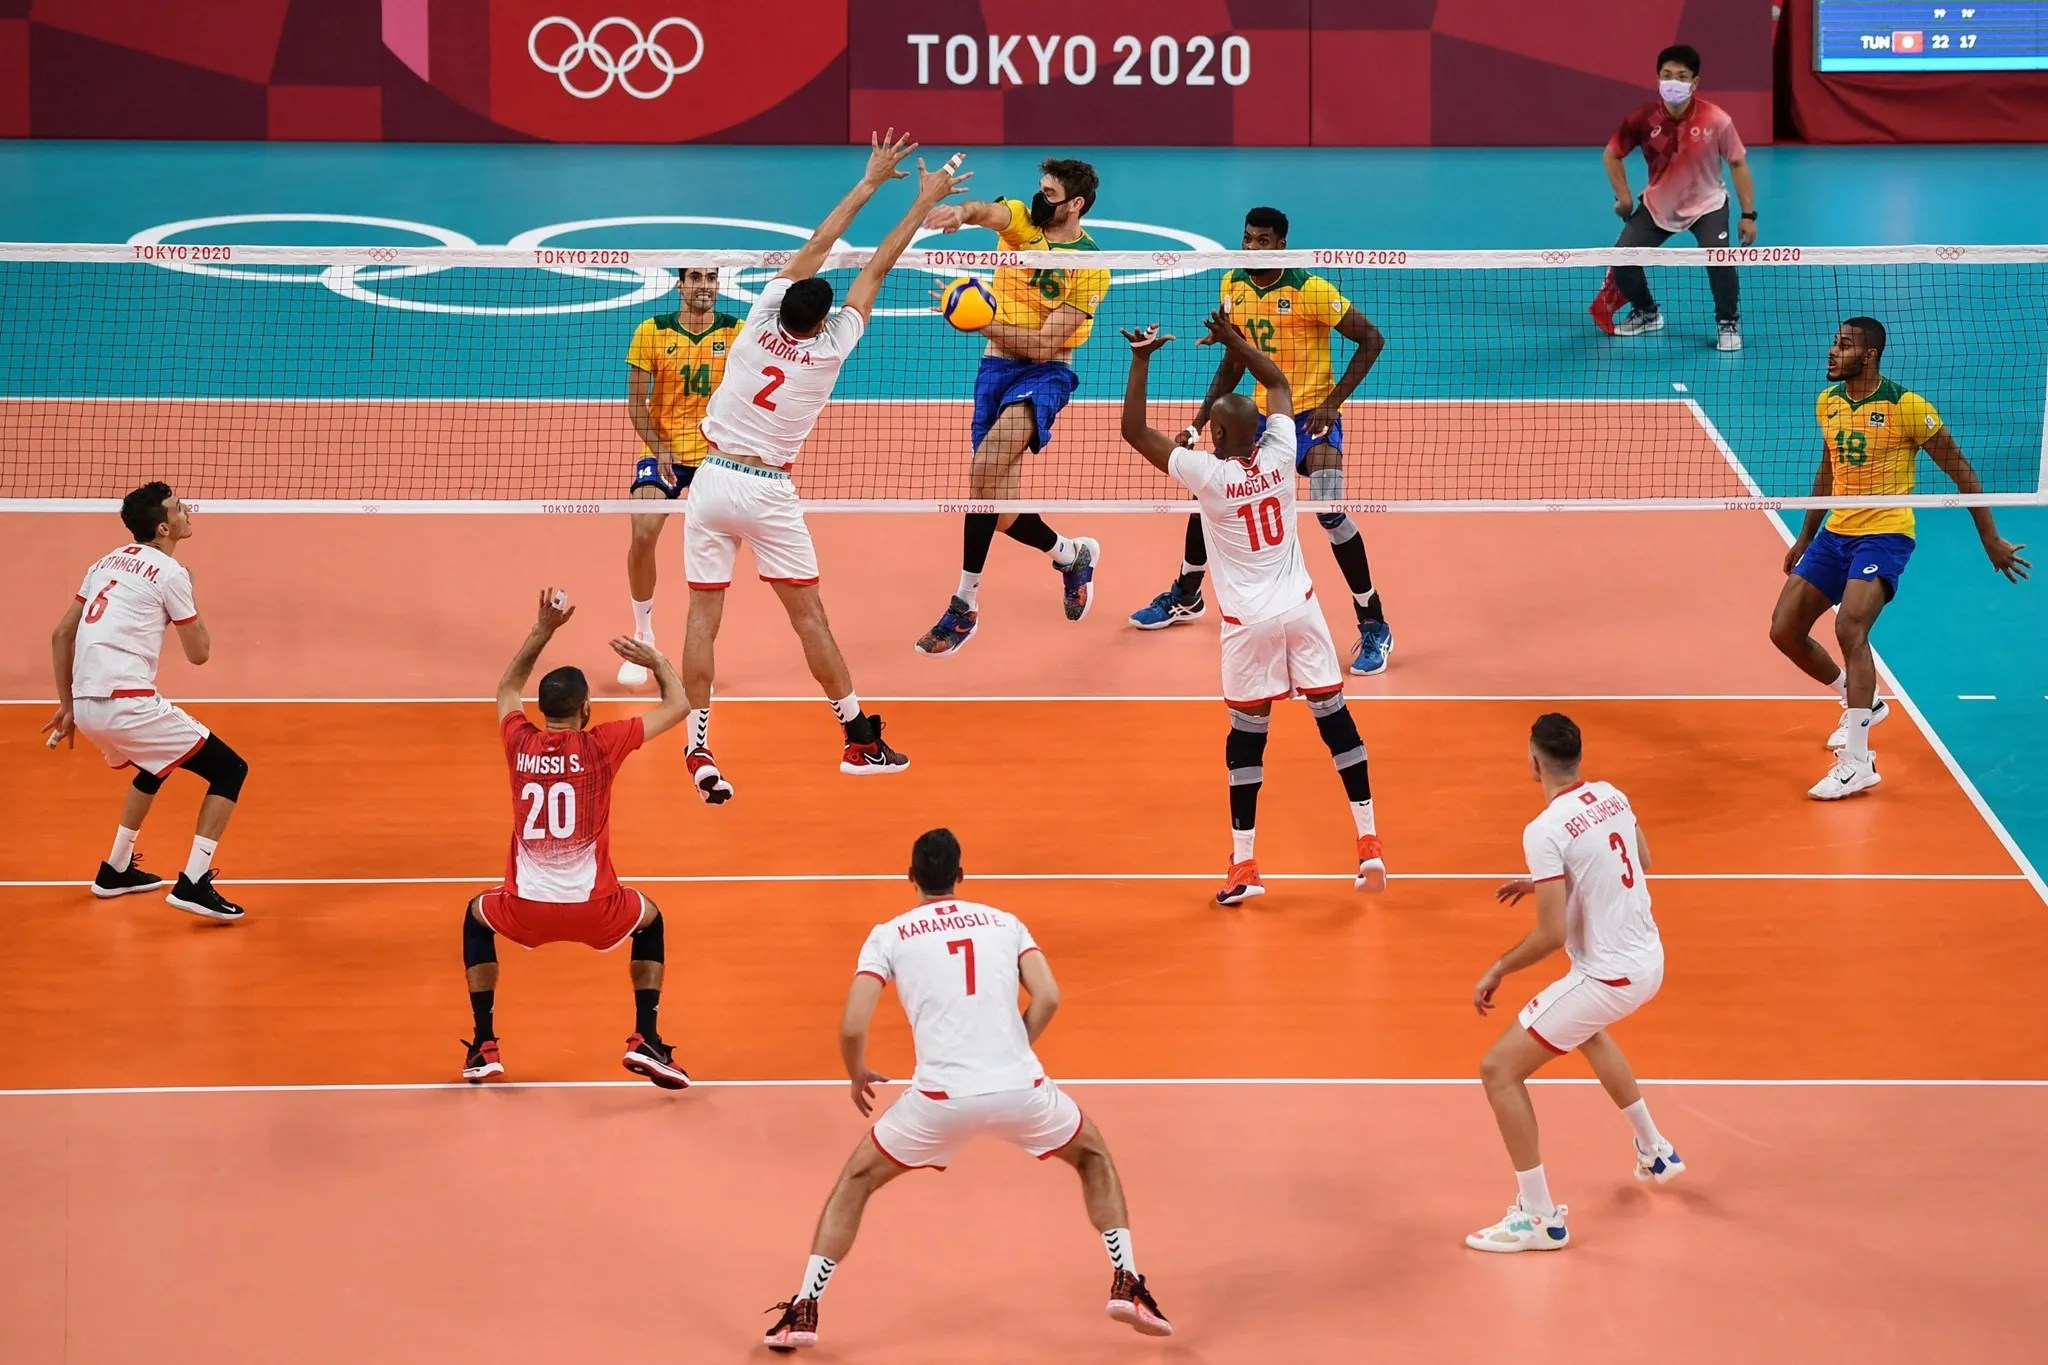 Tokyo 2020: First day of Olympic Games! All results